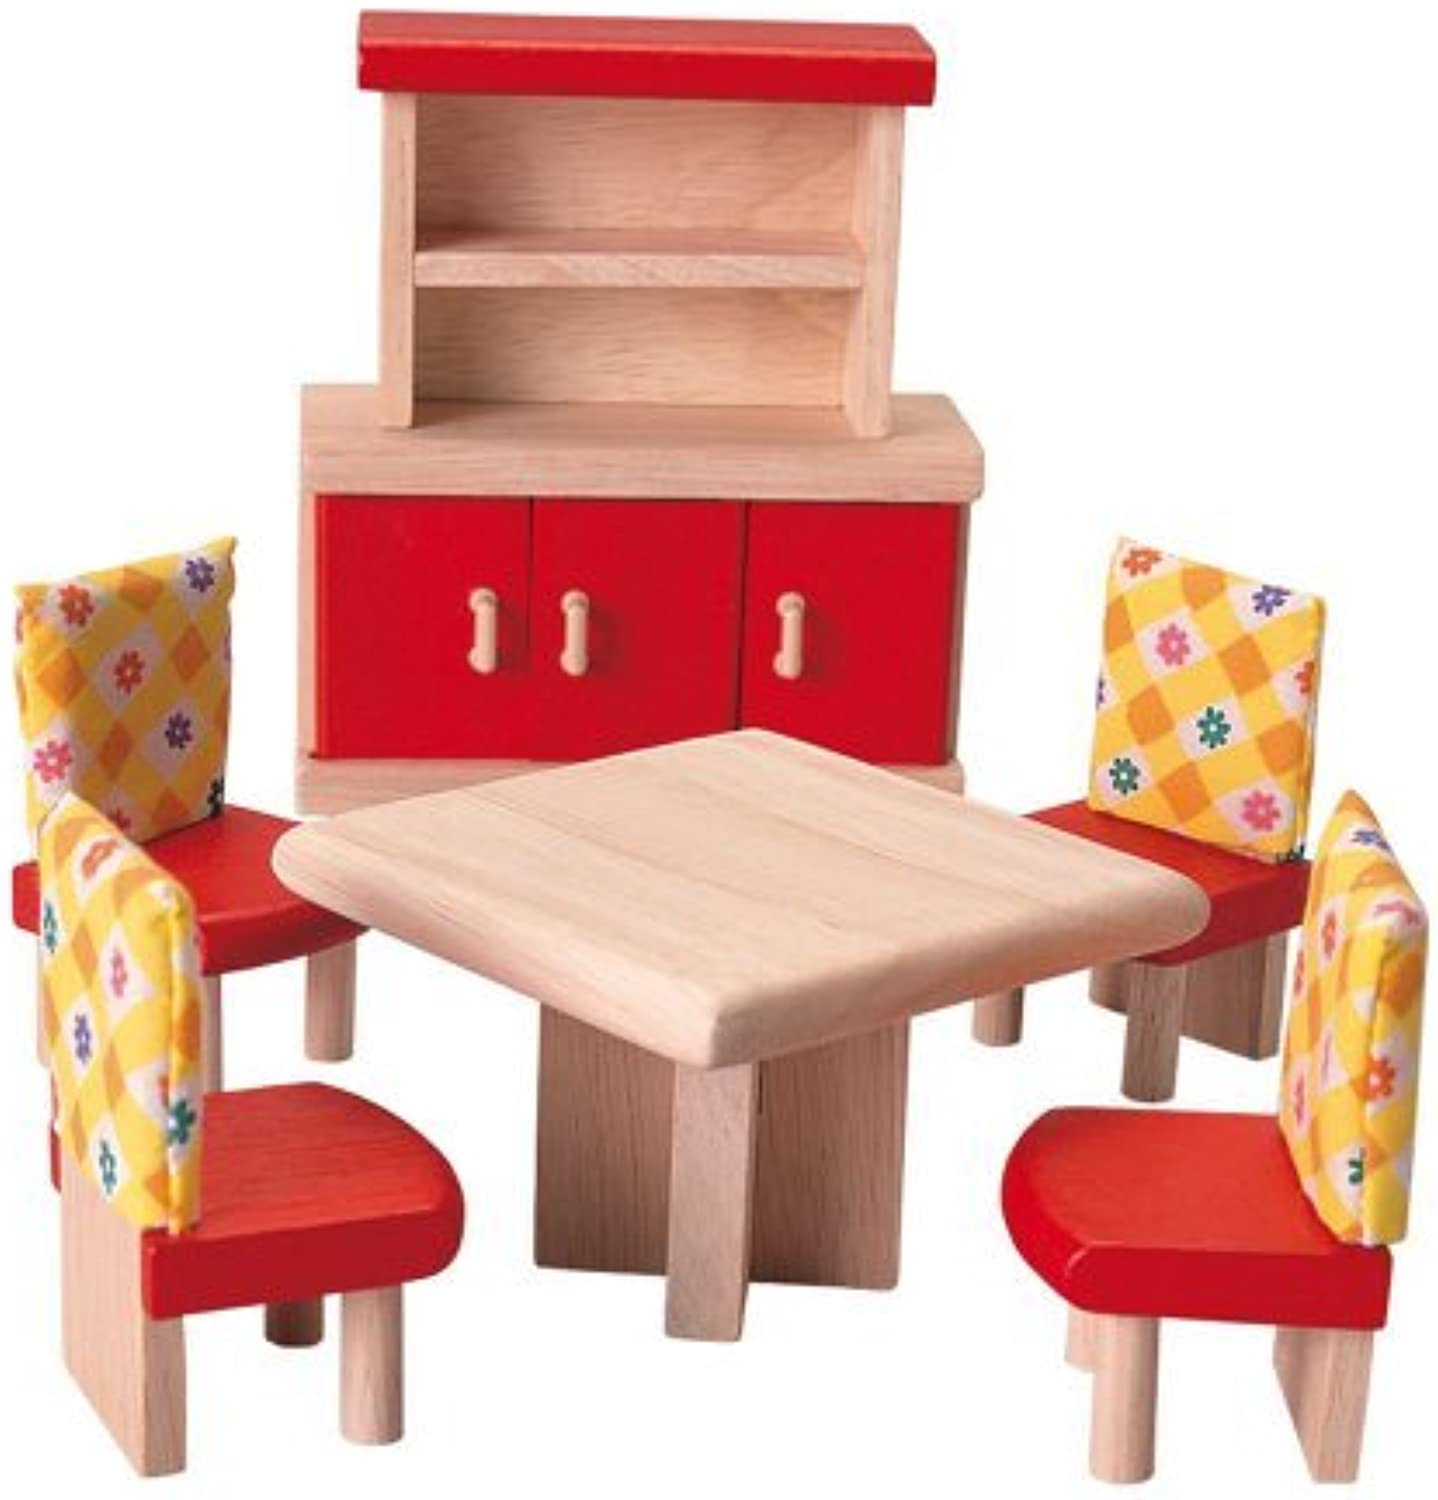 Plan Toys Doll House Dining Room - Neo Style by PlanToys